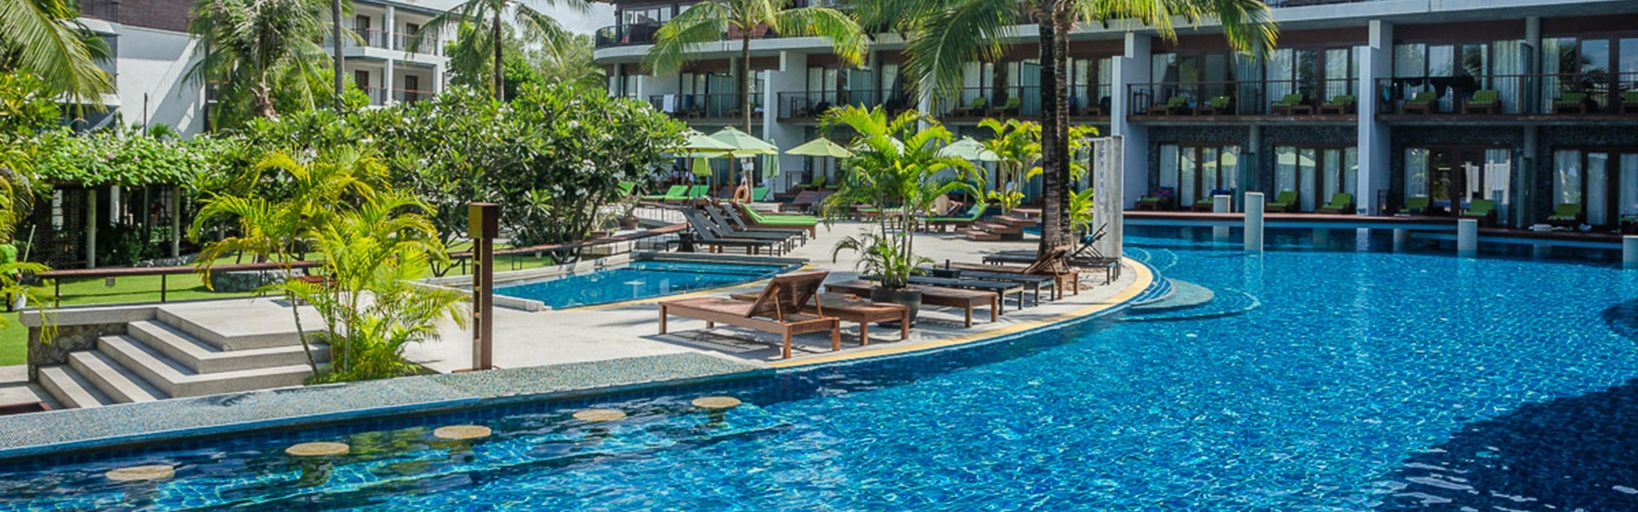 holiday-inn-resort-krabi-3551787071-16×5